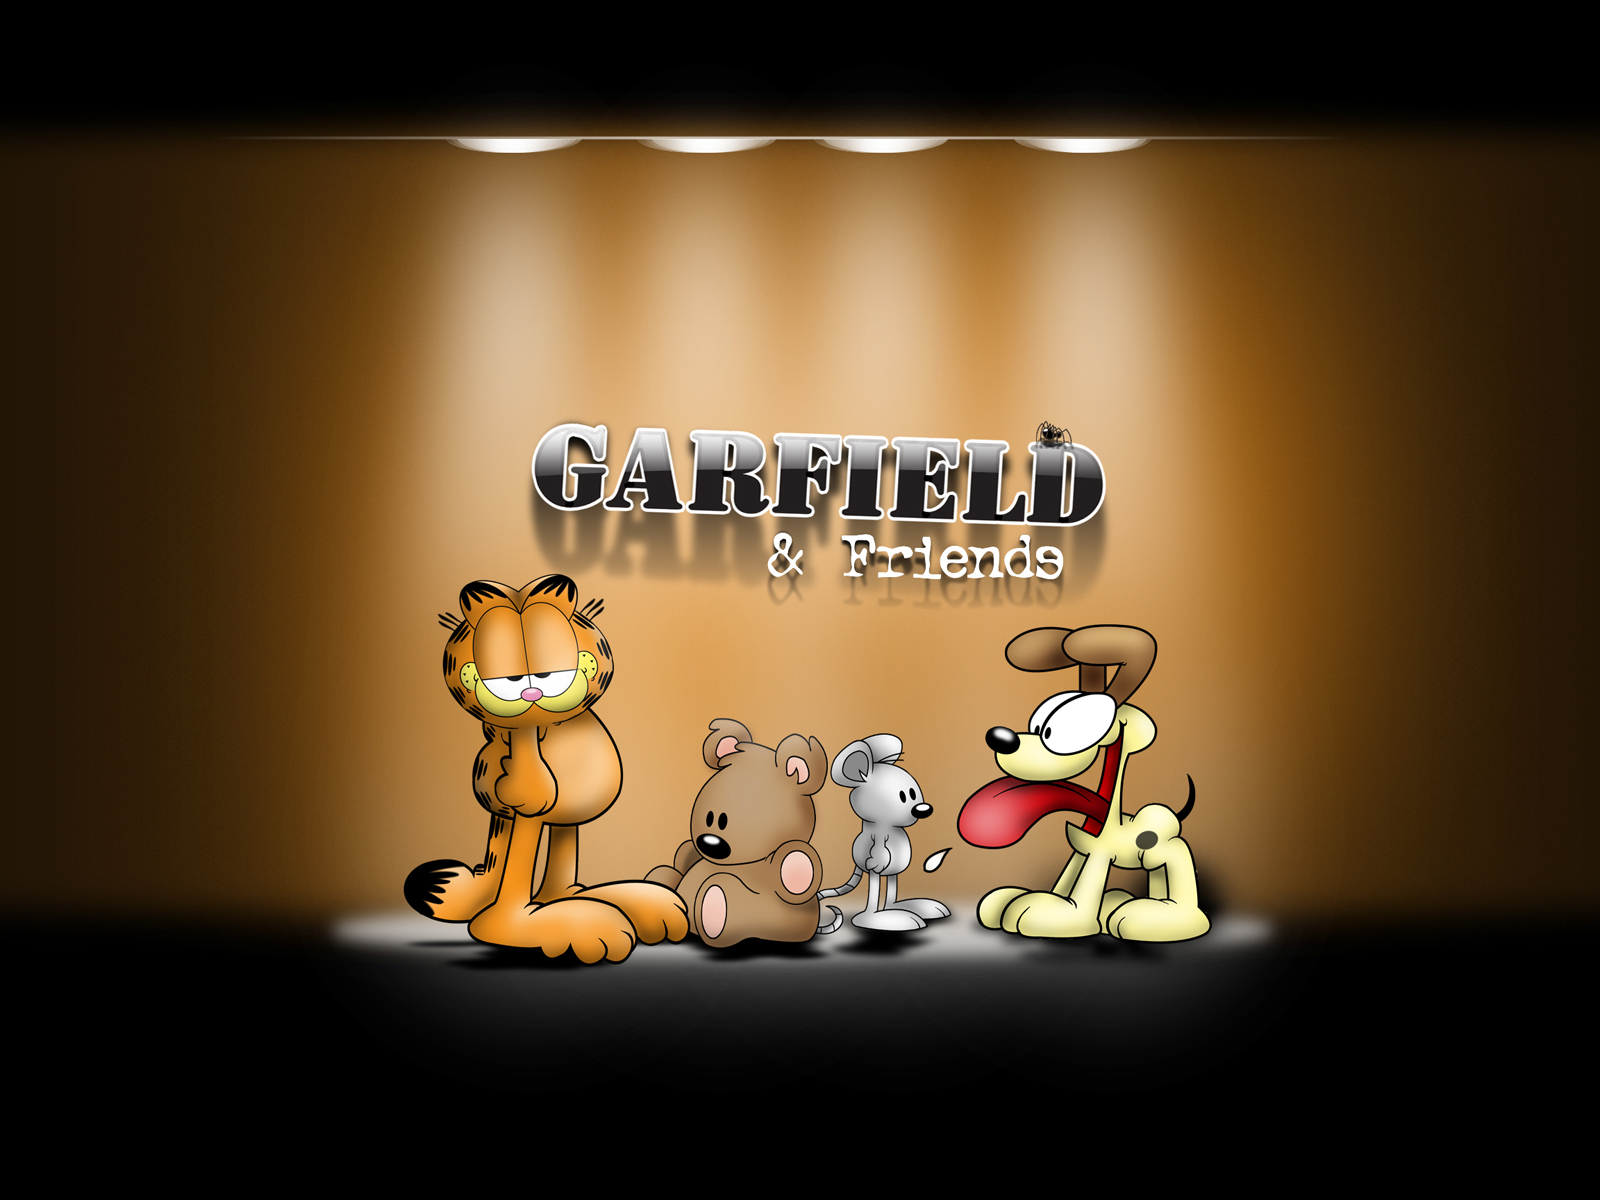 Garfield Company Wallpapers Garfield Company Stock Photos